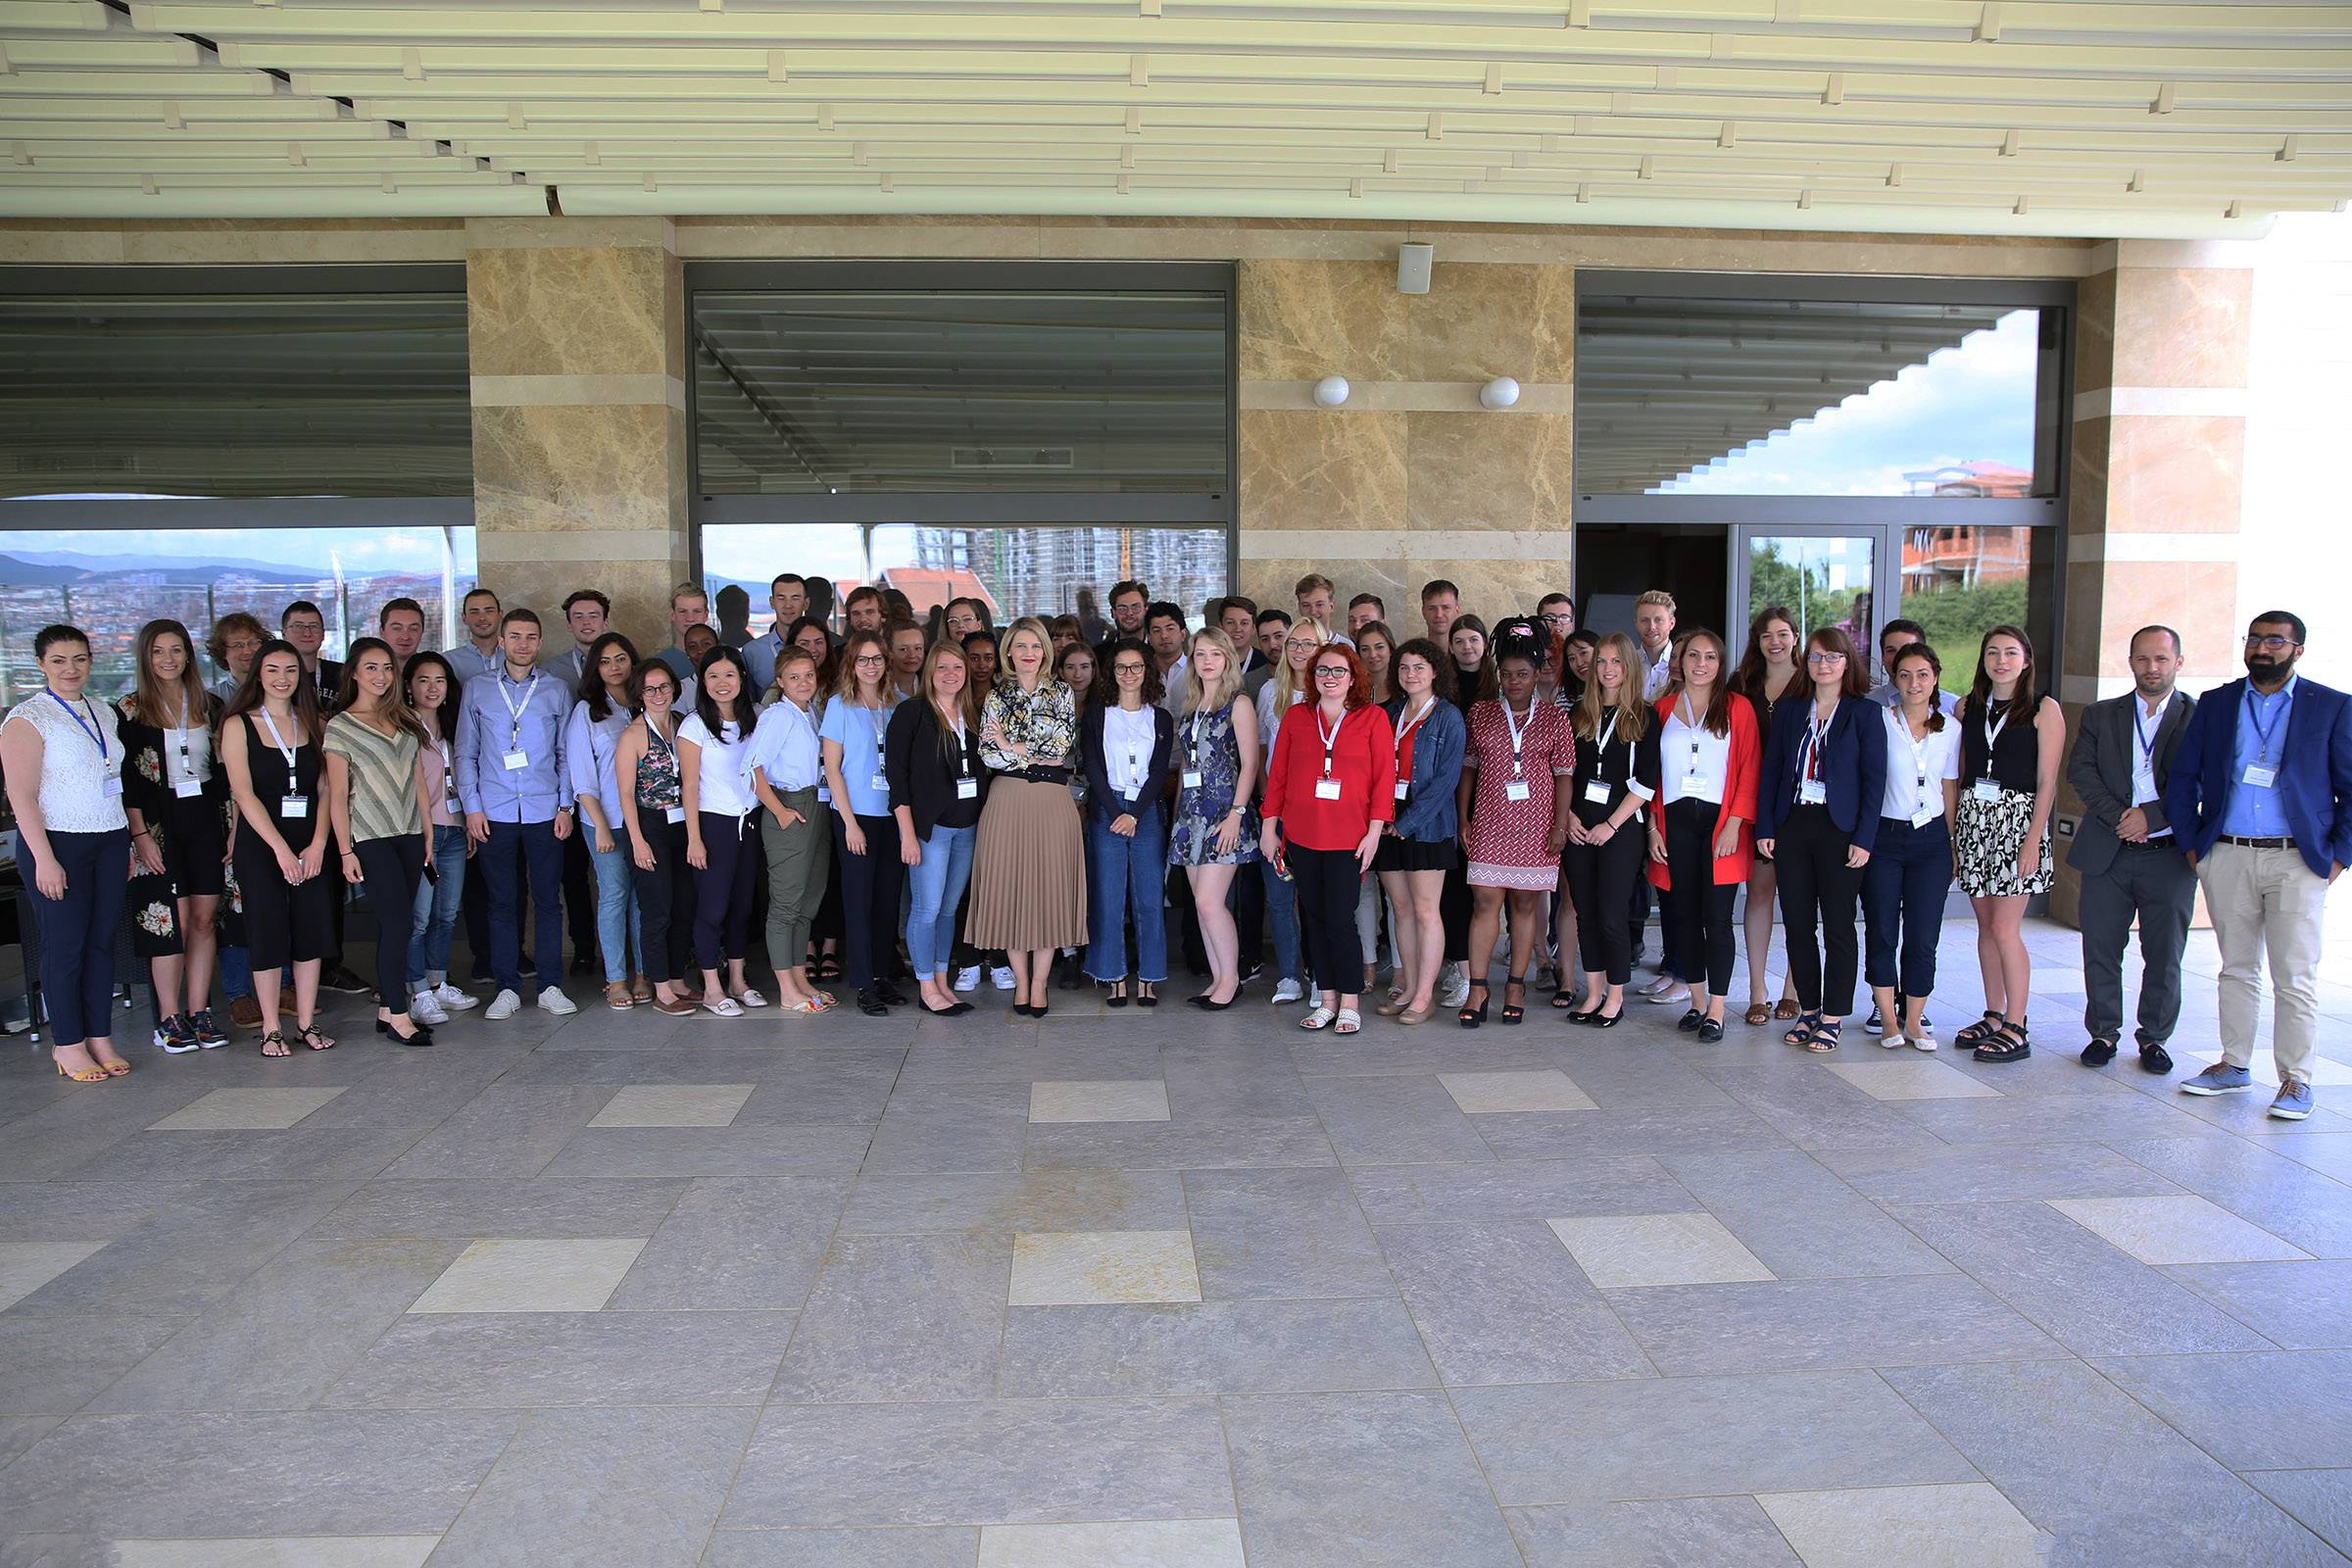 Minister Hoxha before the students of the Summer Academy: The European Agenda unites the region